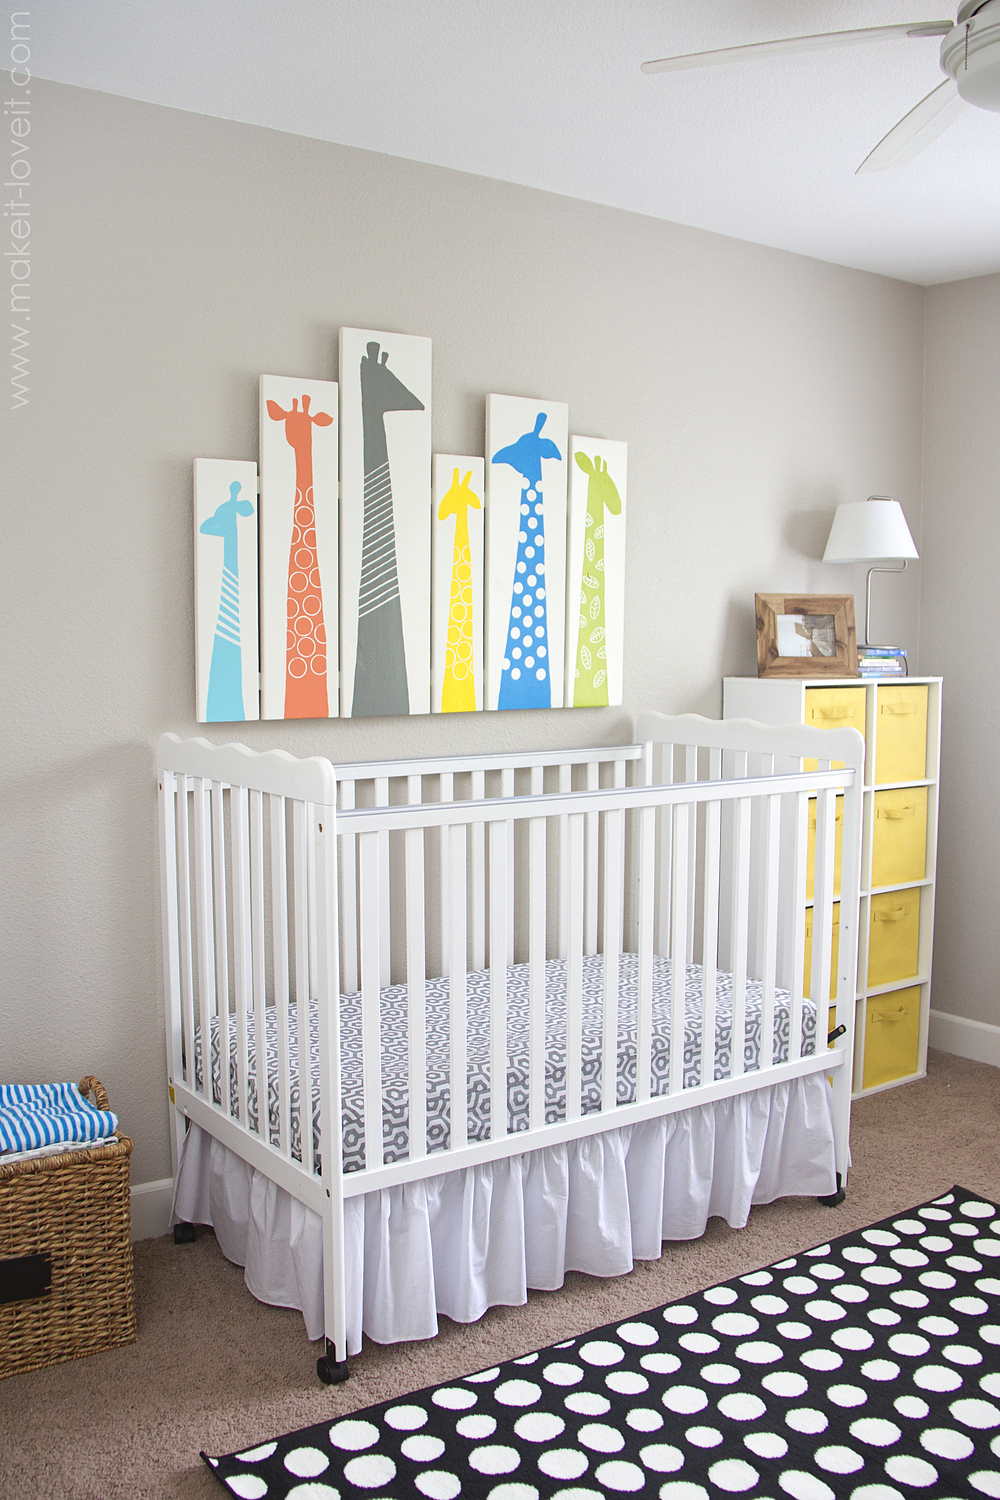 Giraffe Nursery Diy